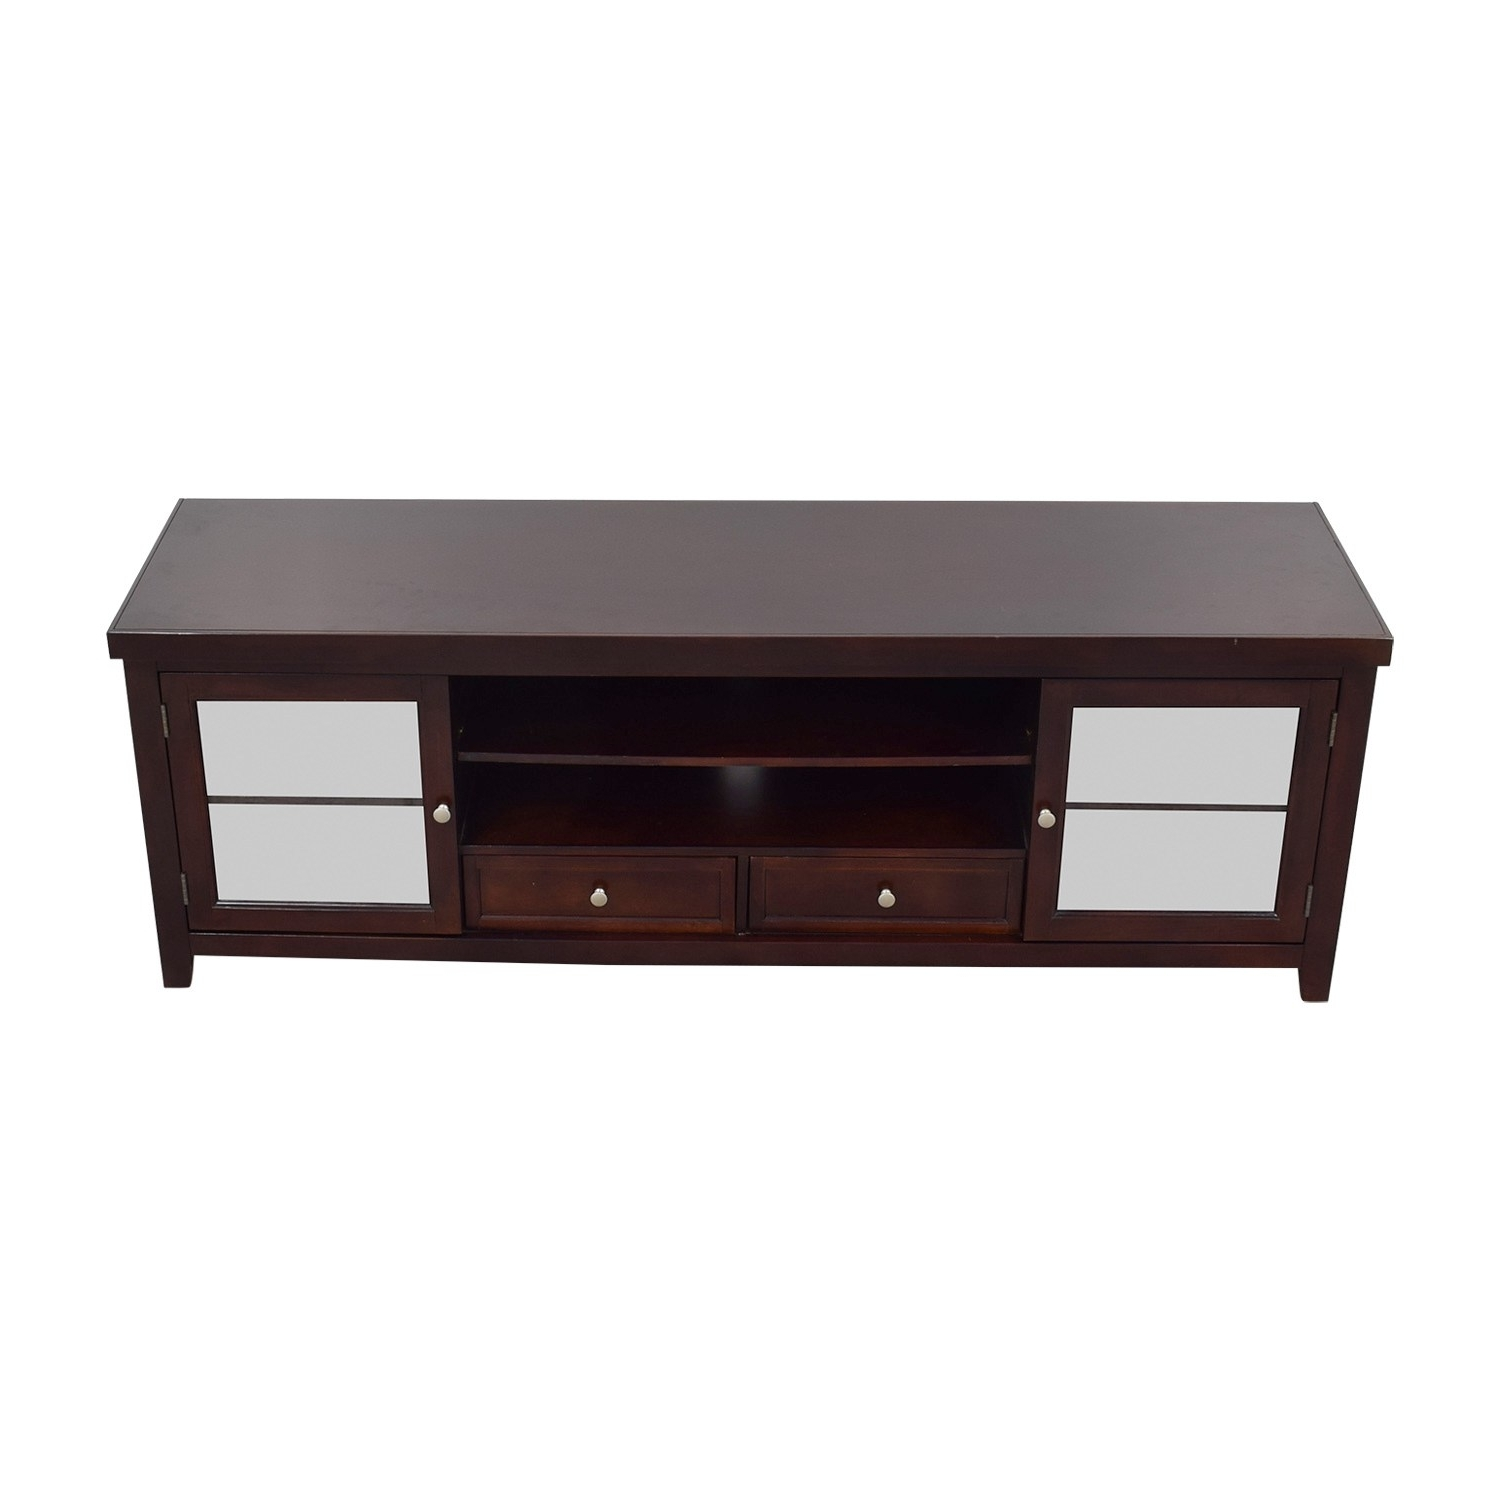 Latest Mountainier Cocktail Tables In Picture Glass Tv Stand Storage Living Spaces Furniture Coffee Table (View 7 of 20)